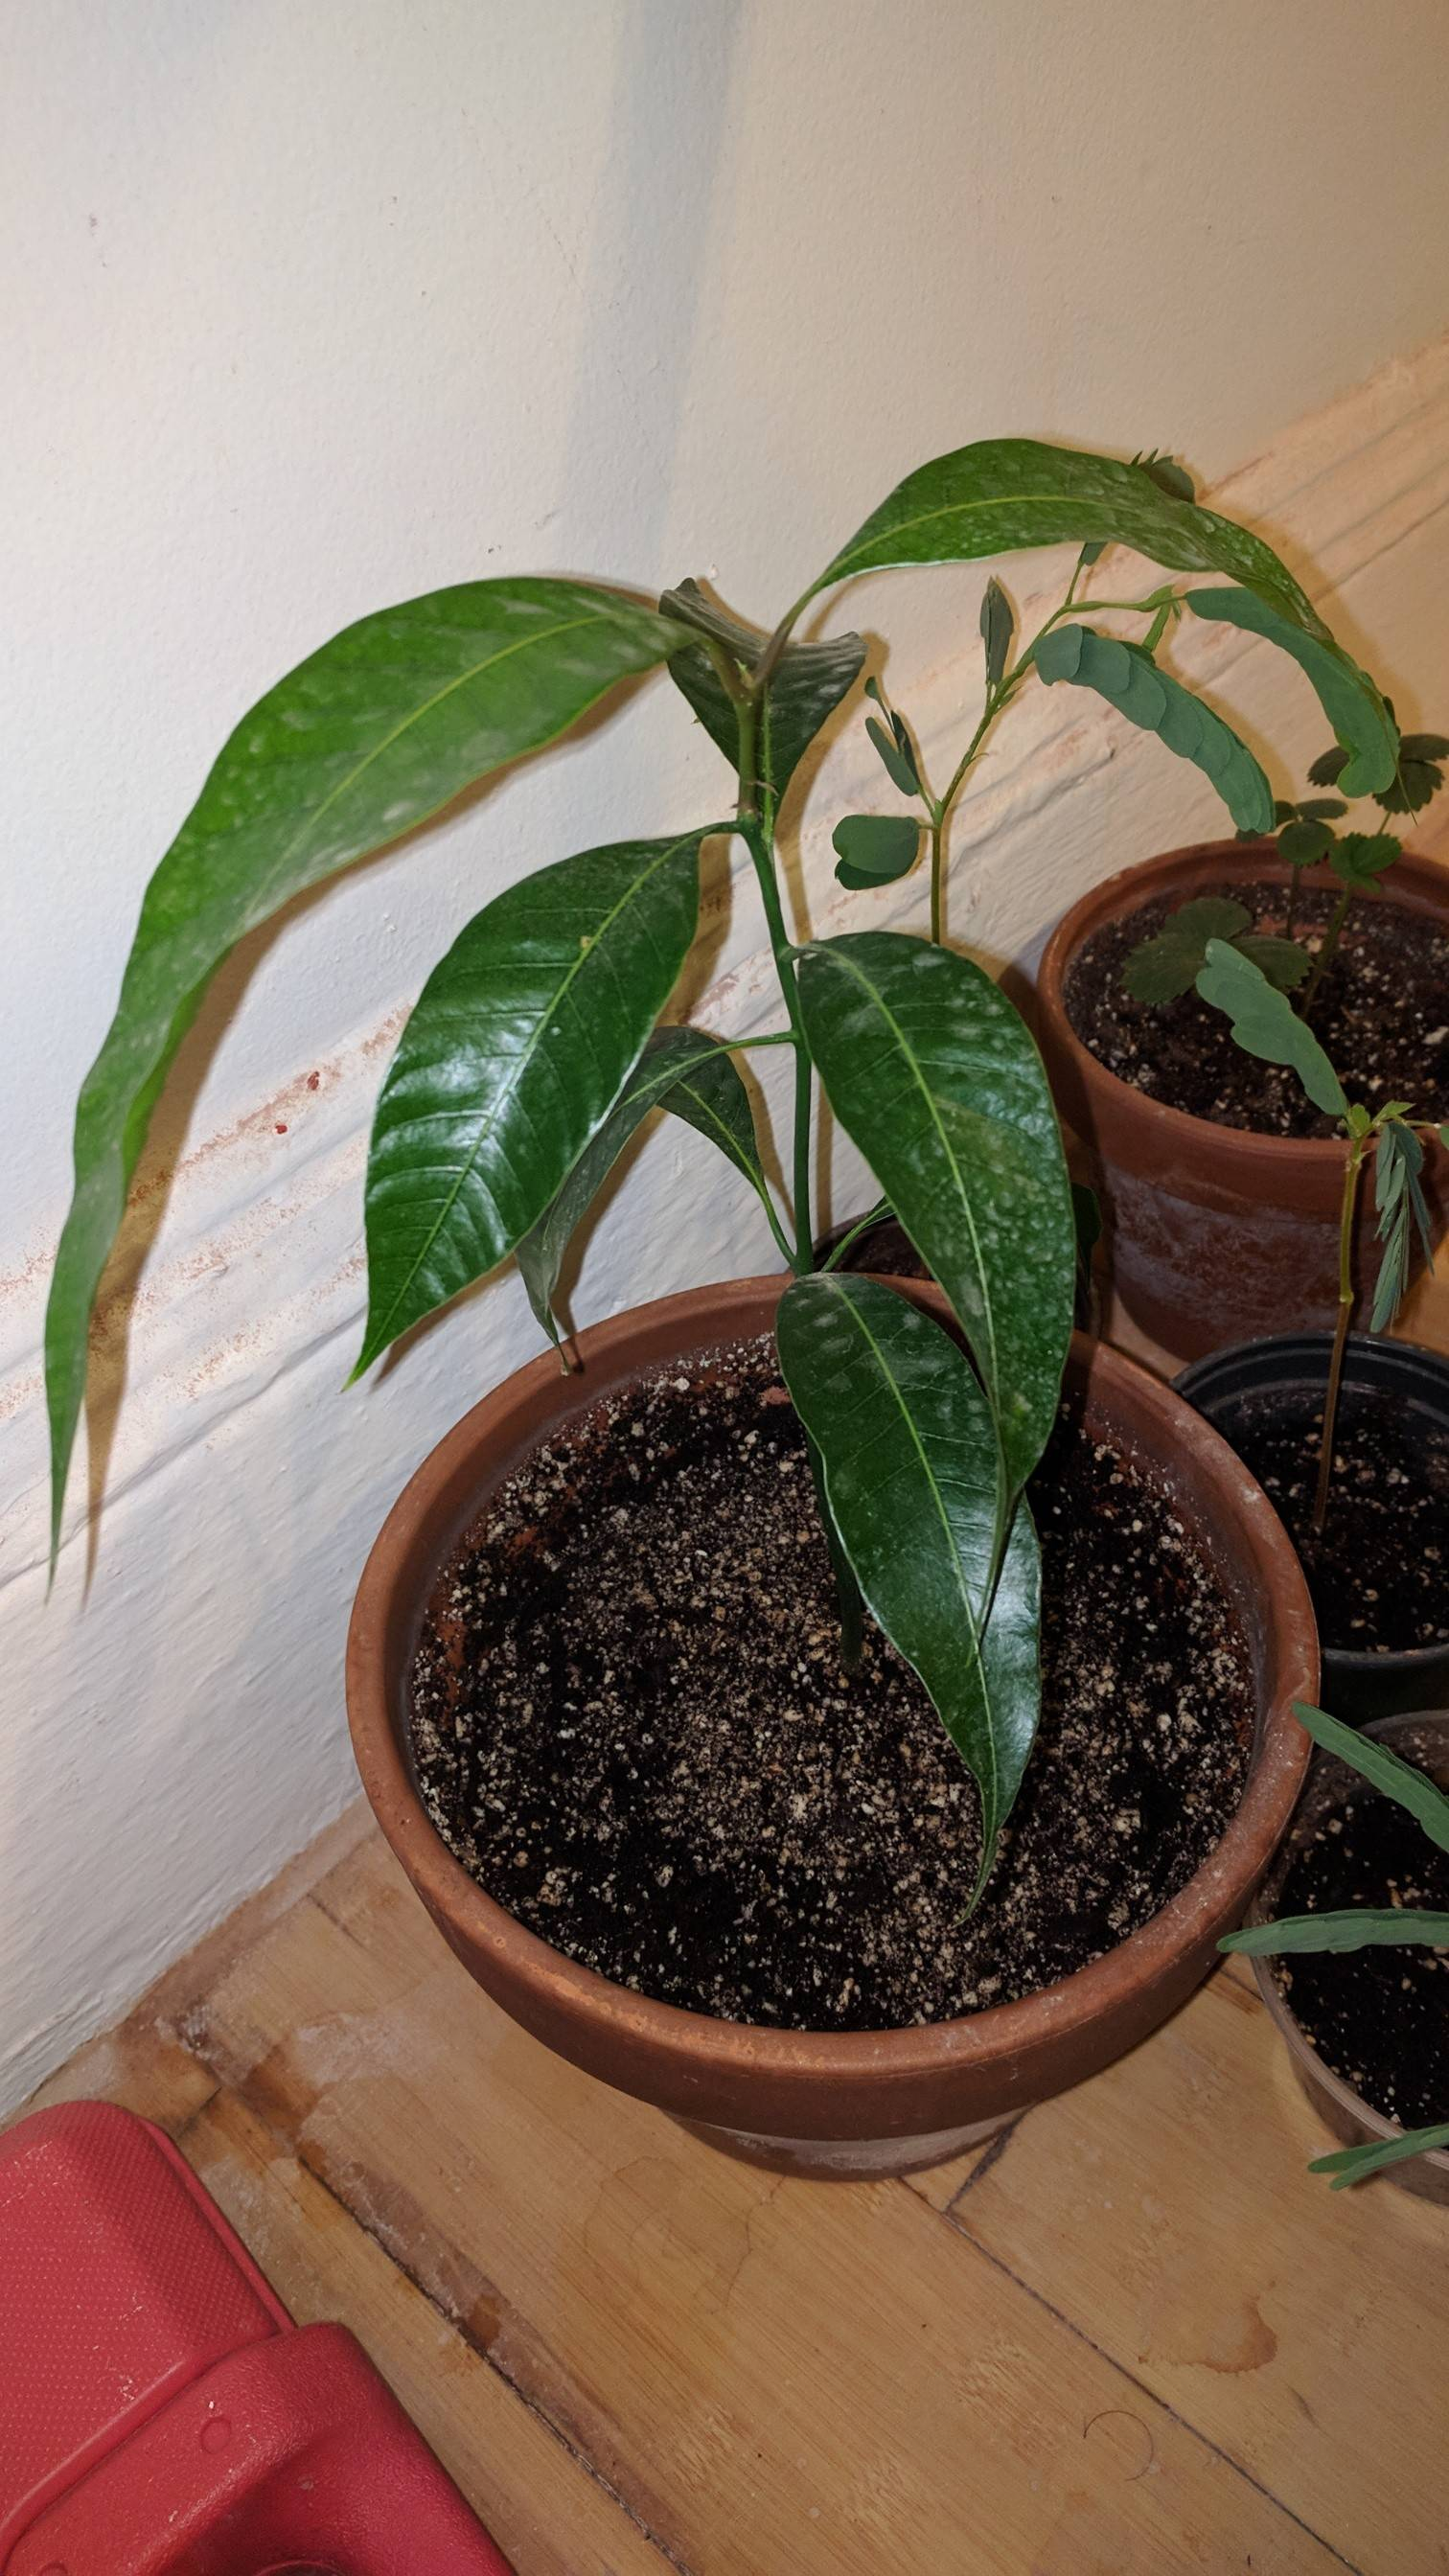 Mango seedling photo